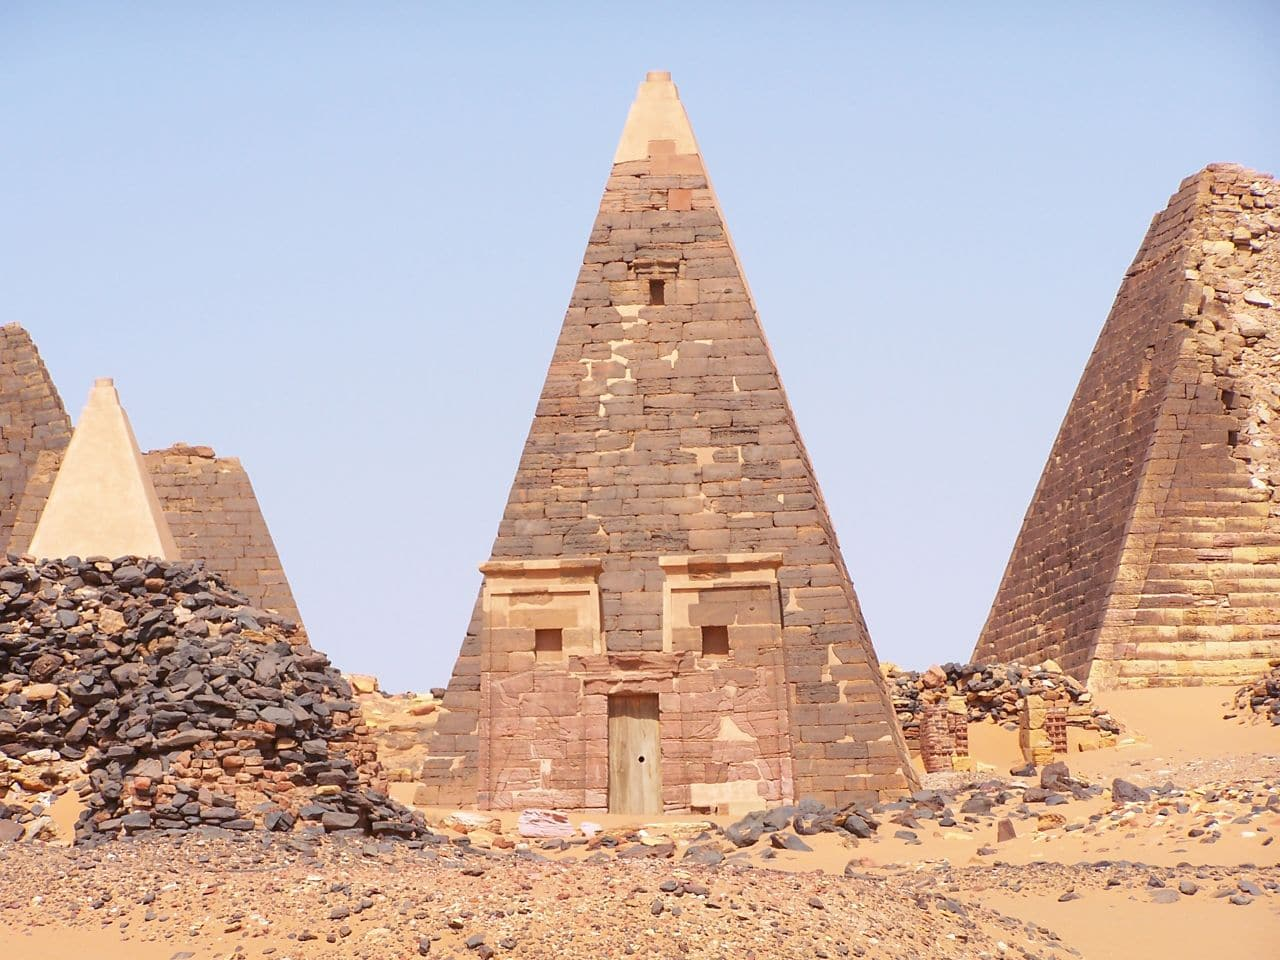 Pyramids of Northern Sudan